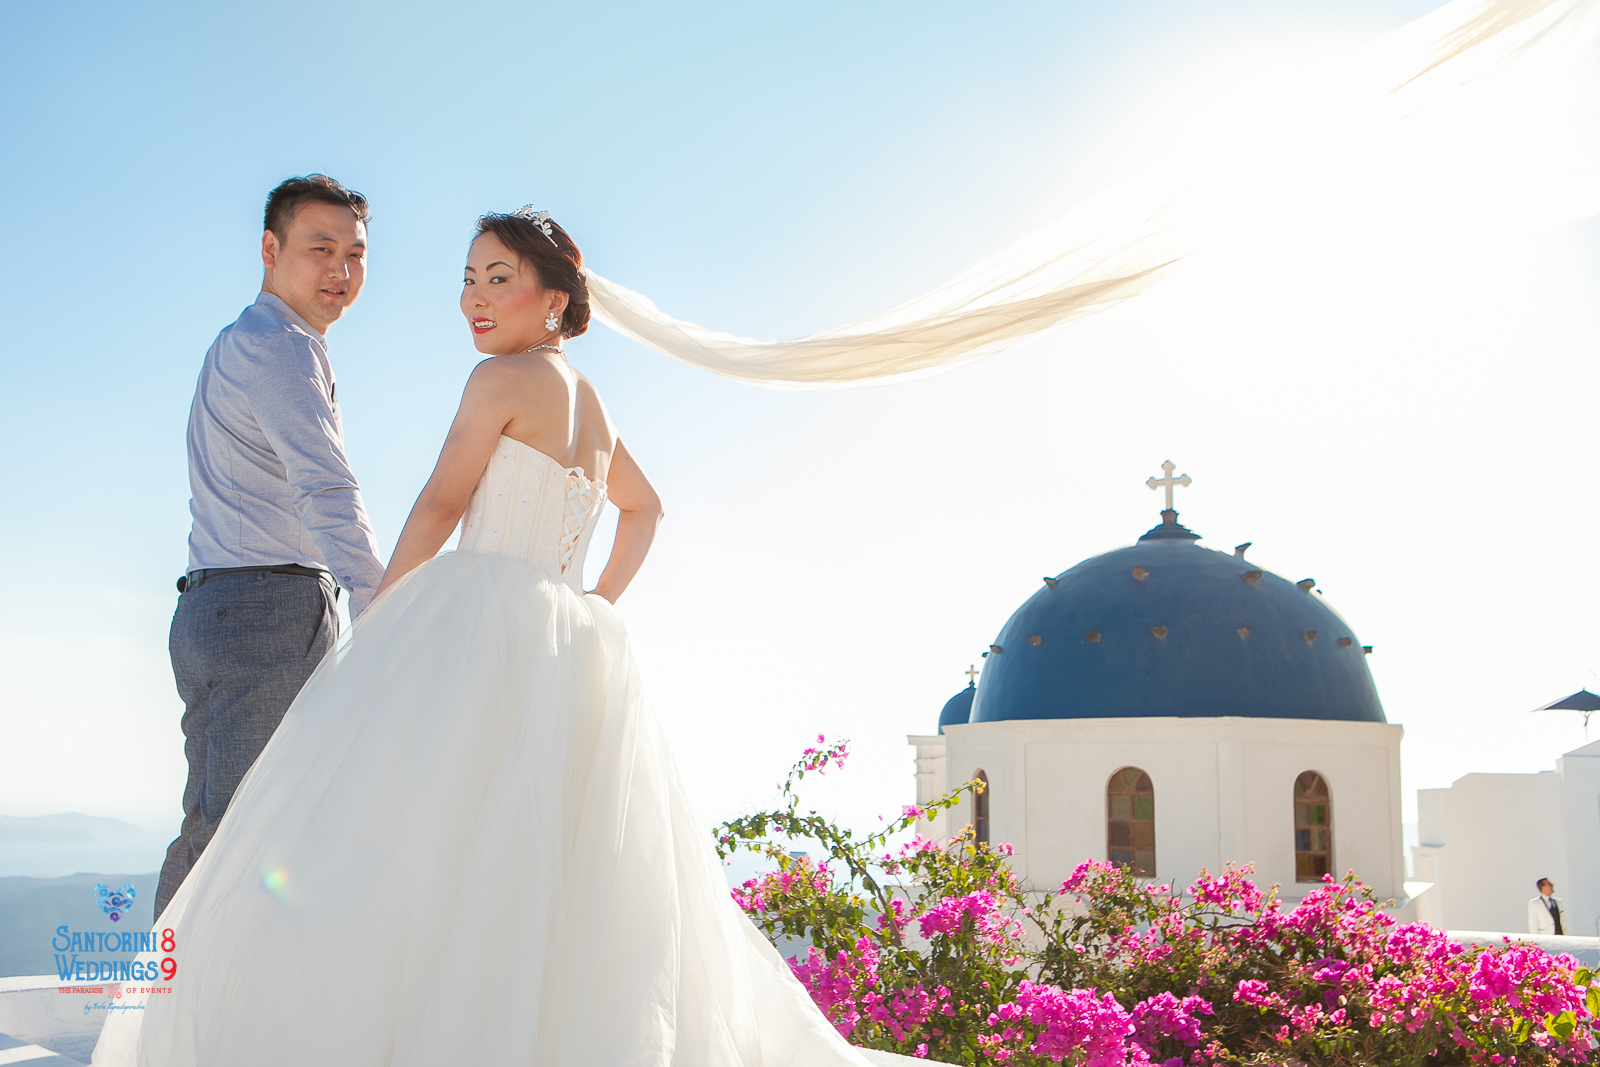 wedding-dong-wang-by-santorini8-weddings9-dragons-group-21.jpg